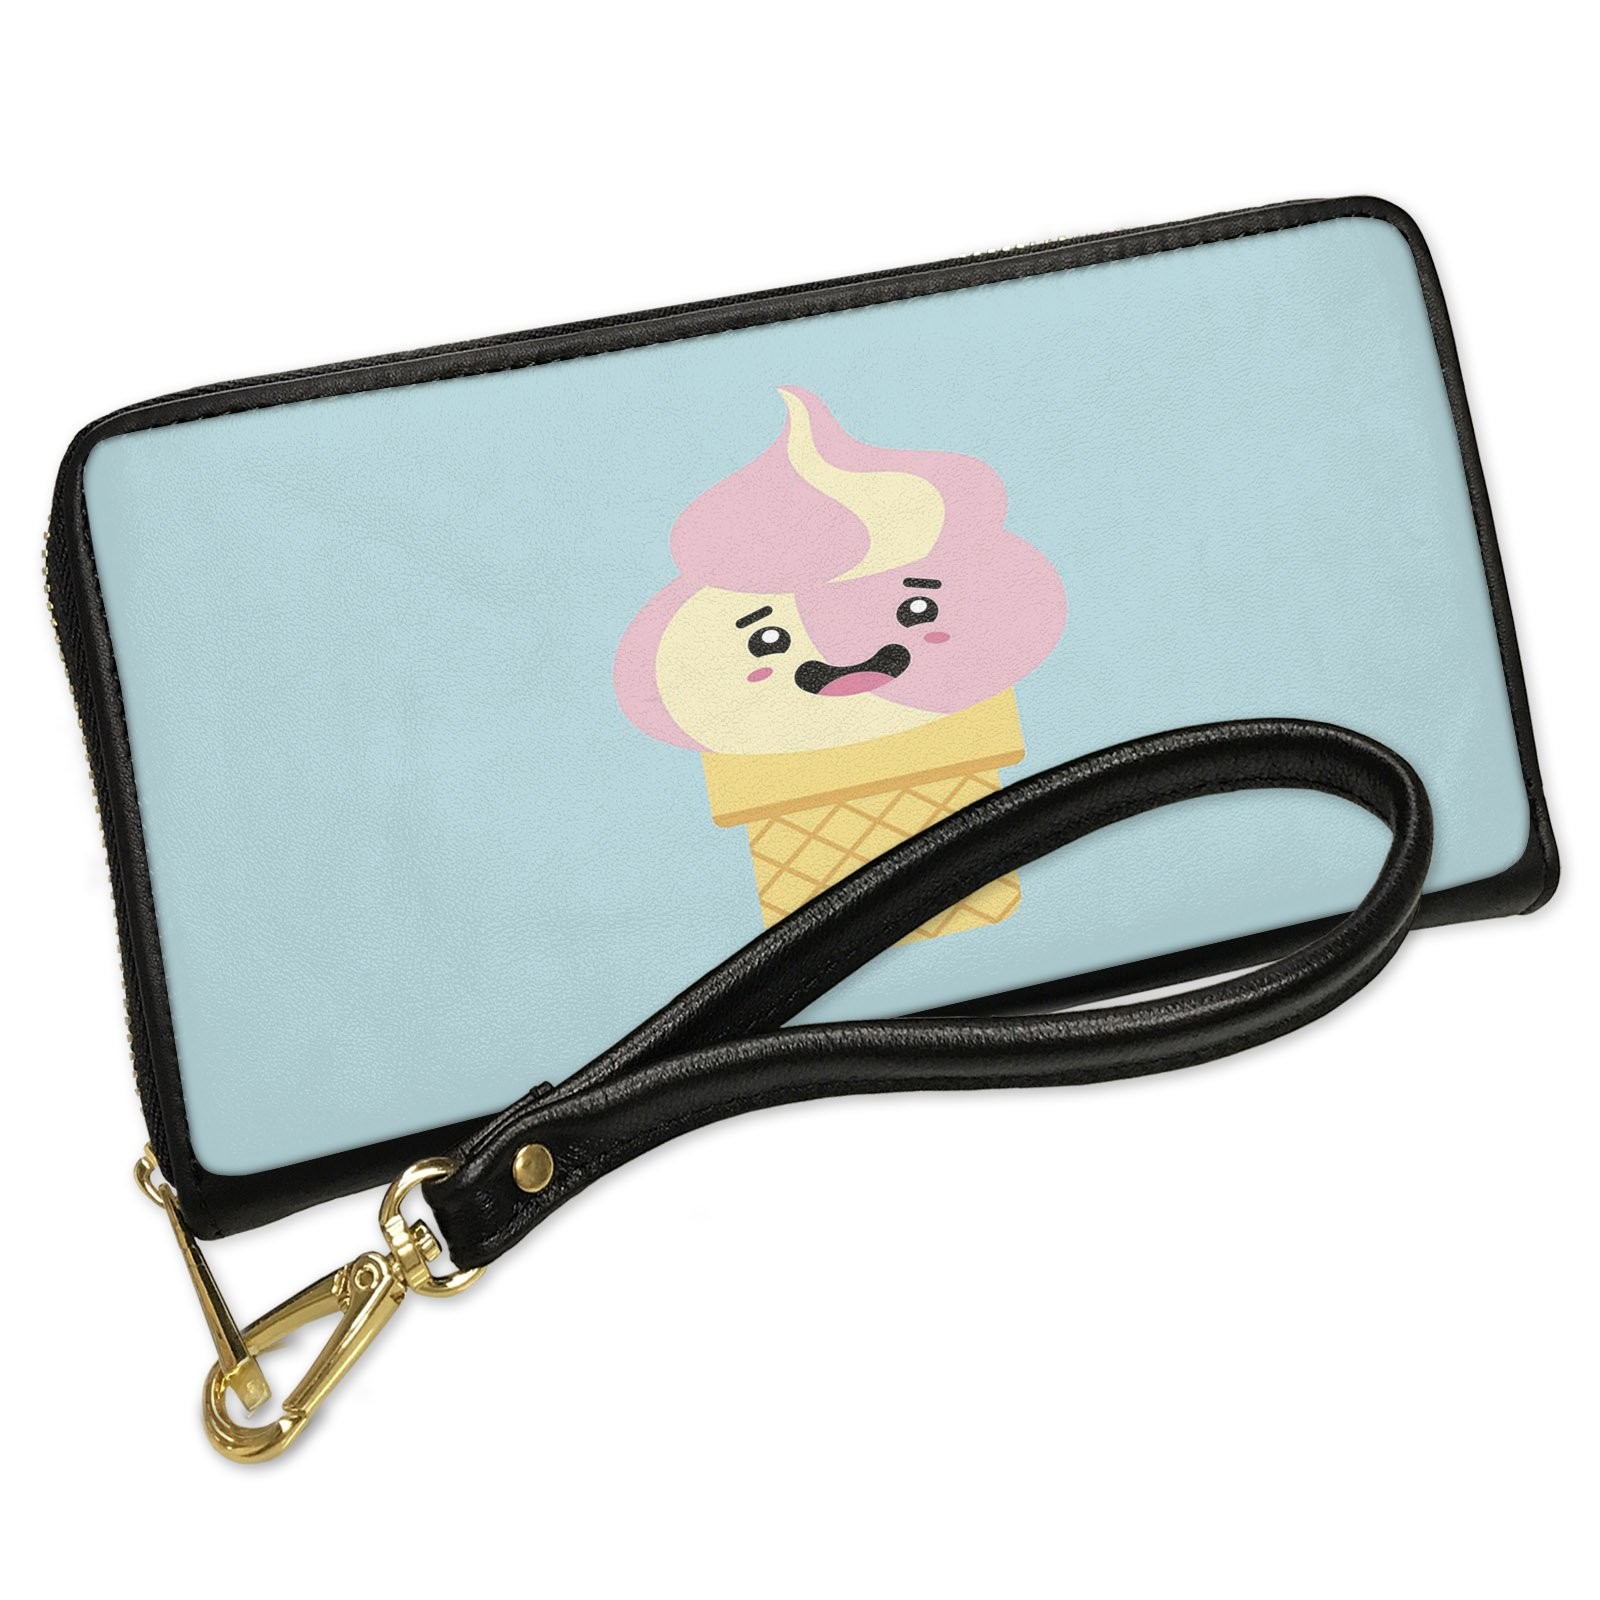 Wallet Clutch Strawberry, Vanilla Swirl Ice Cream Cone Cute, Japanese Kawaii Food with Face with Removable Wristlet Strap Neonblond